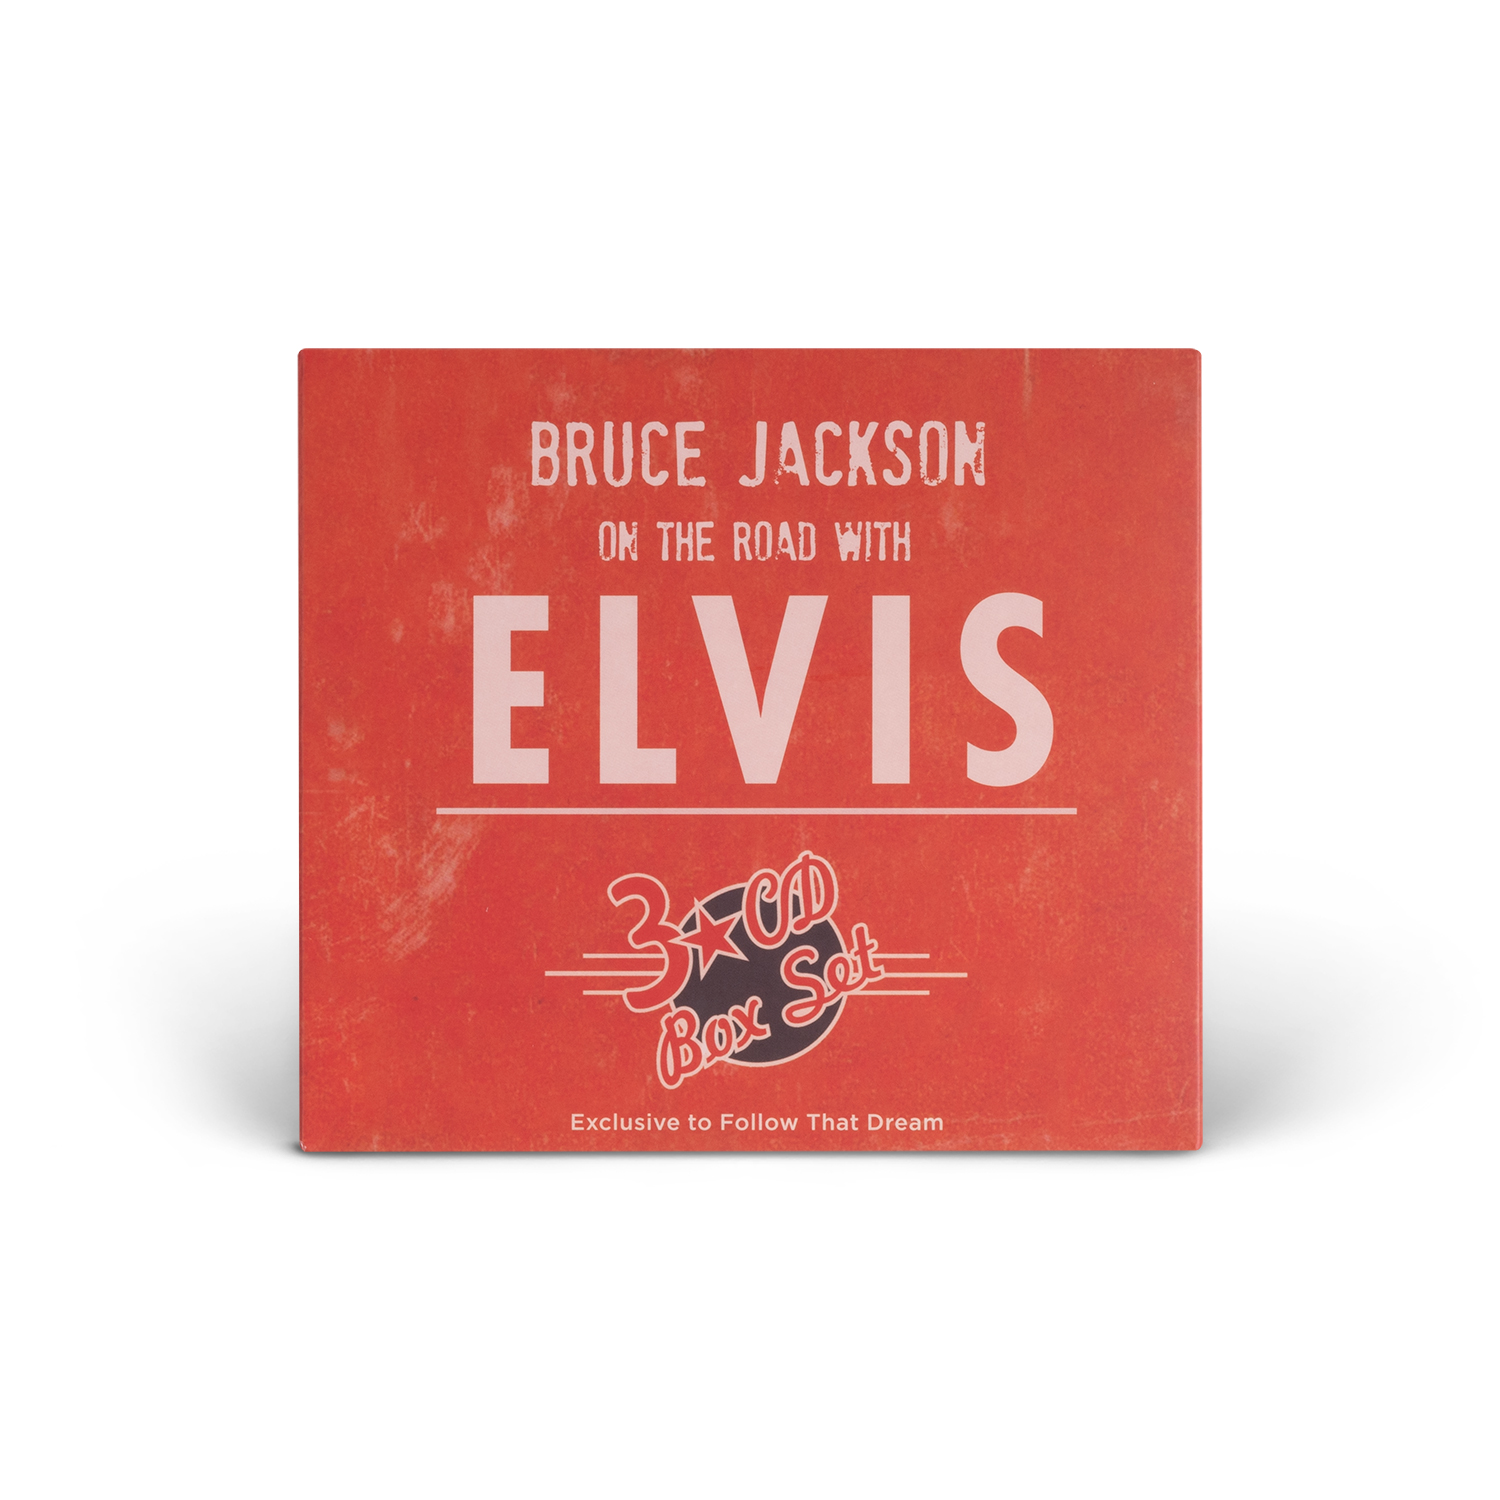 Bruce Jackson's ON THE ROAD WITH ELVIS